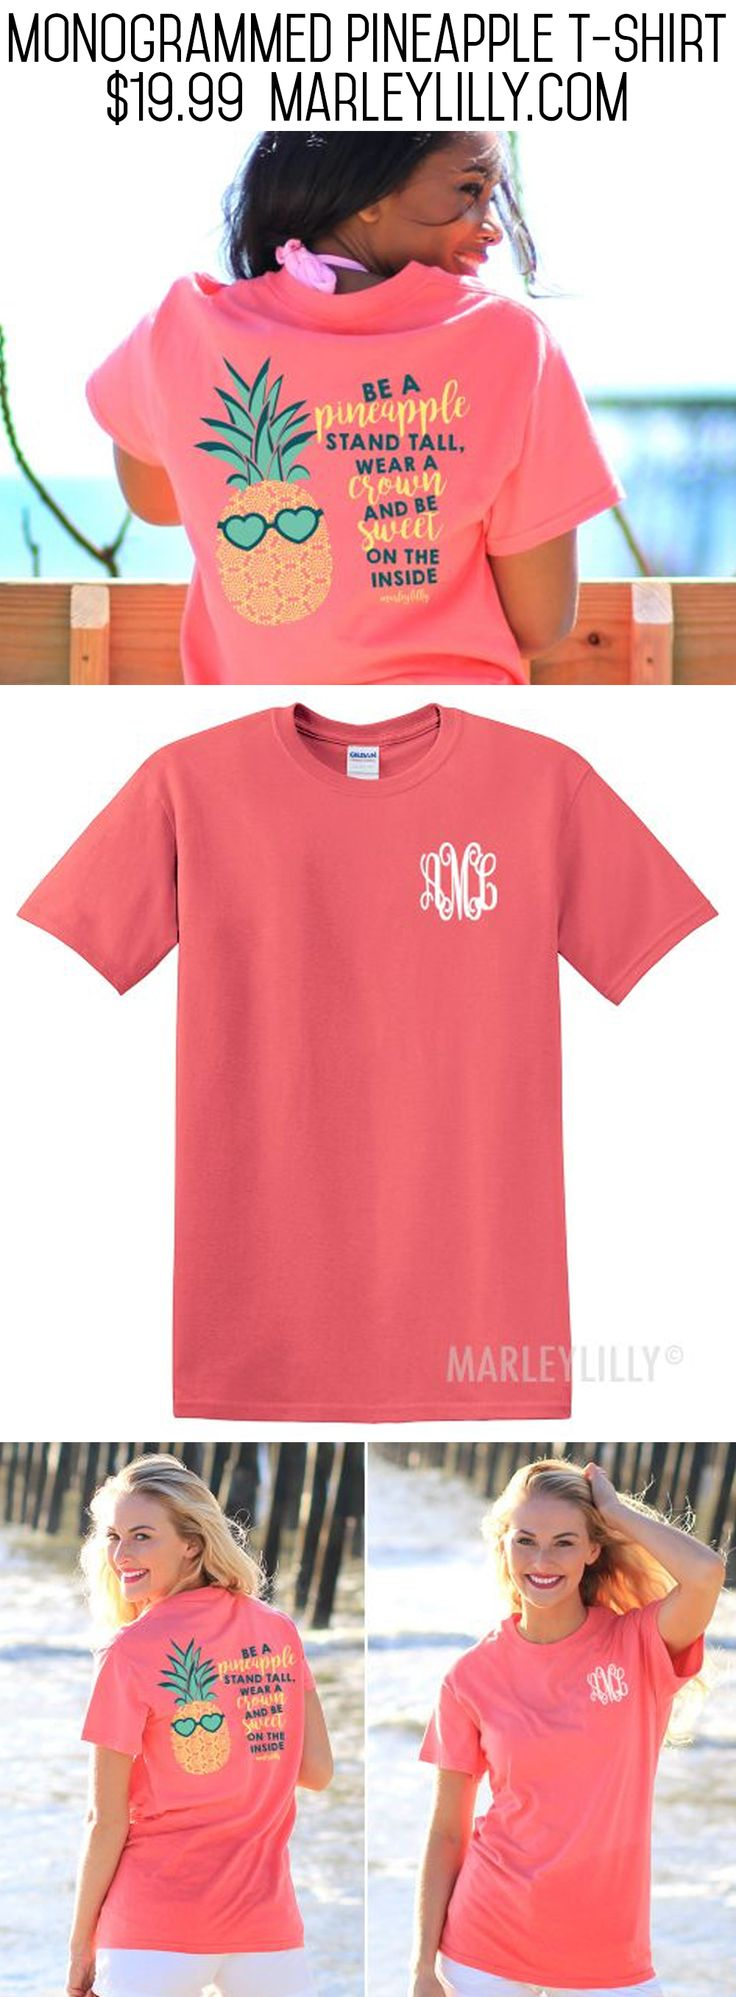 #SALE! Get this Monogrammed Pineapple T-Shirt while you can before they are…